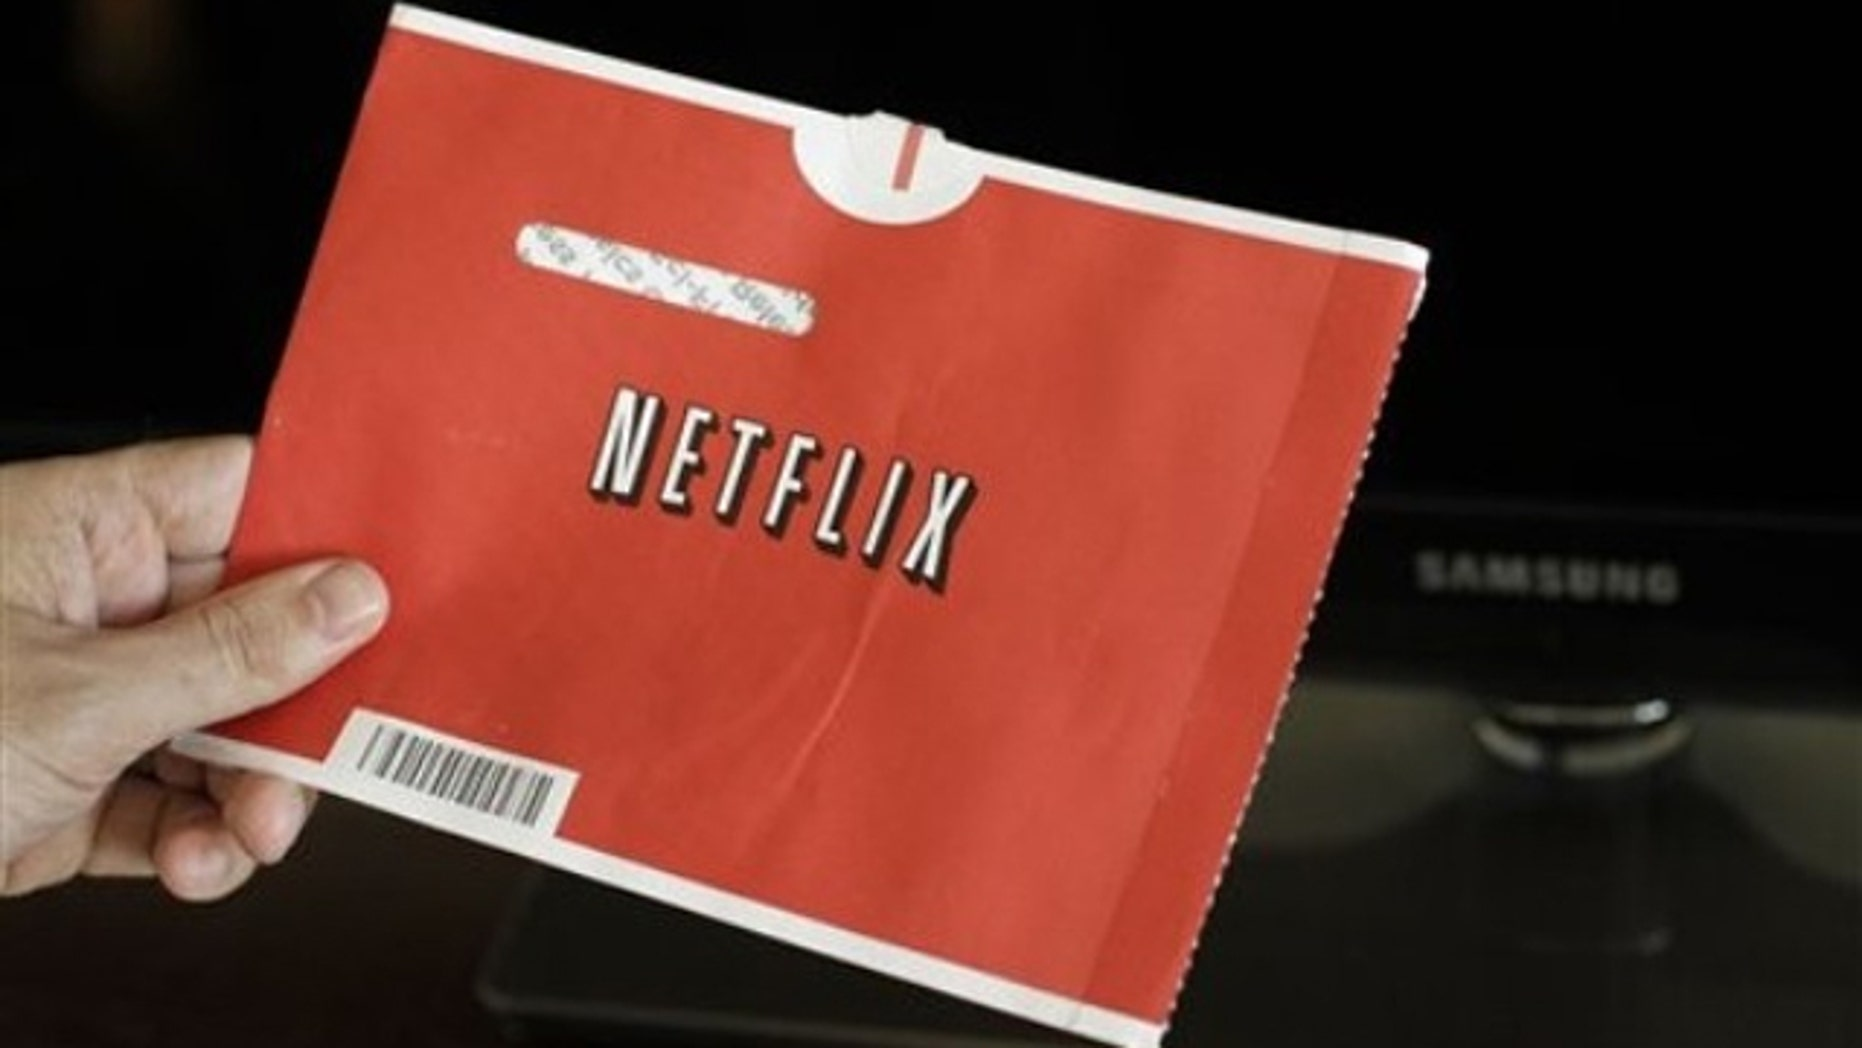 Netflix has come a long way from its DVD-by-mail roots.